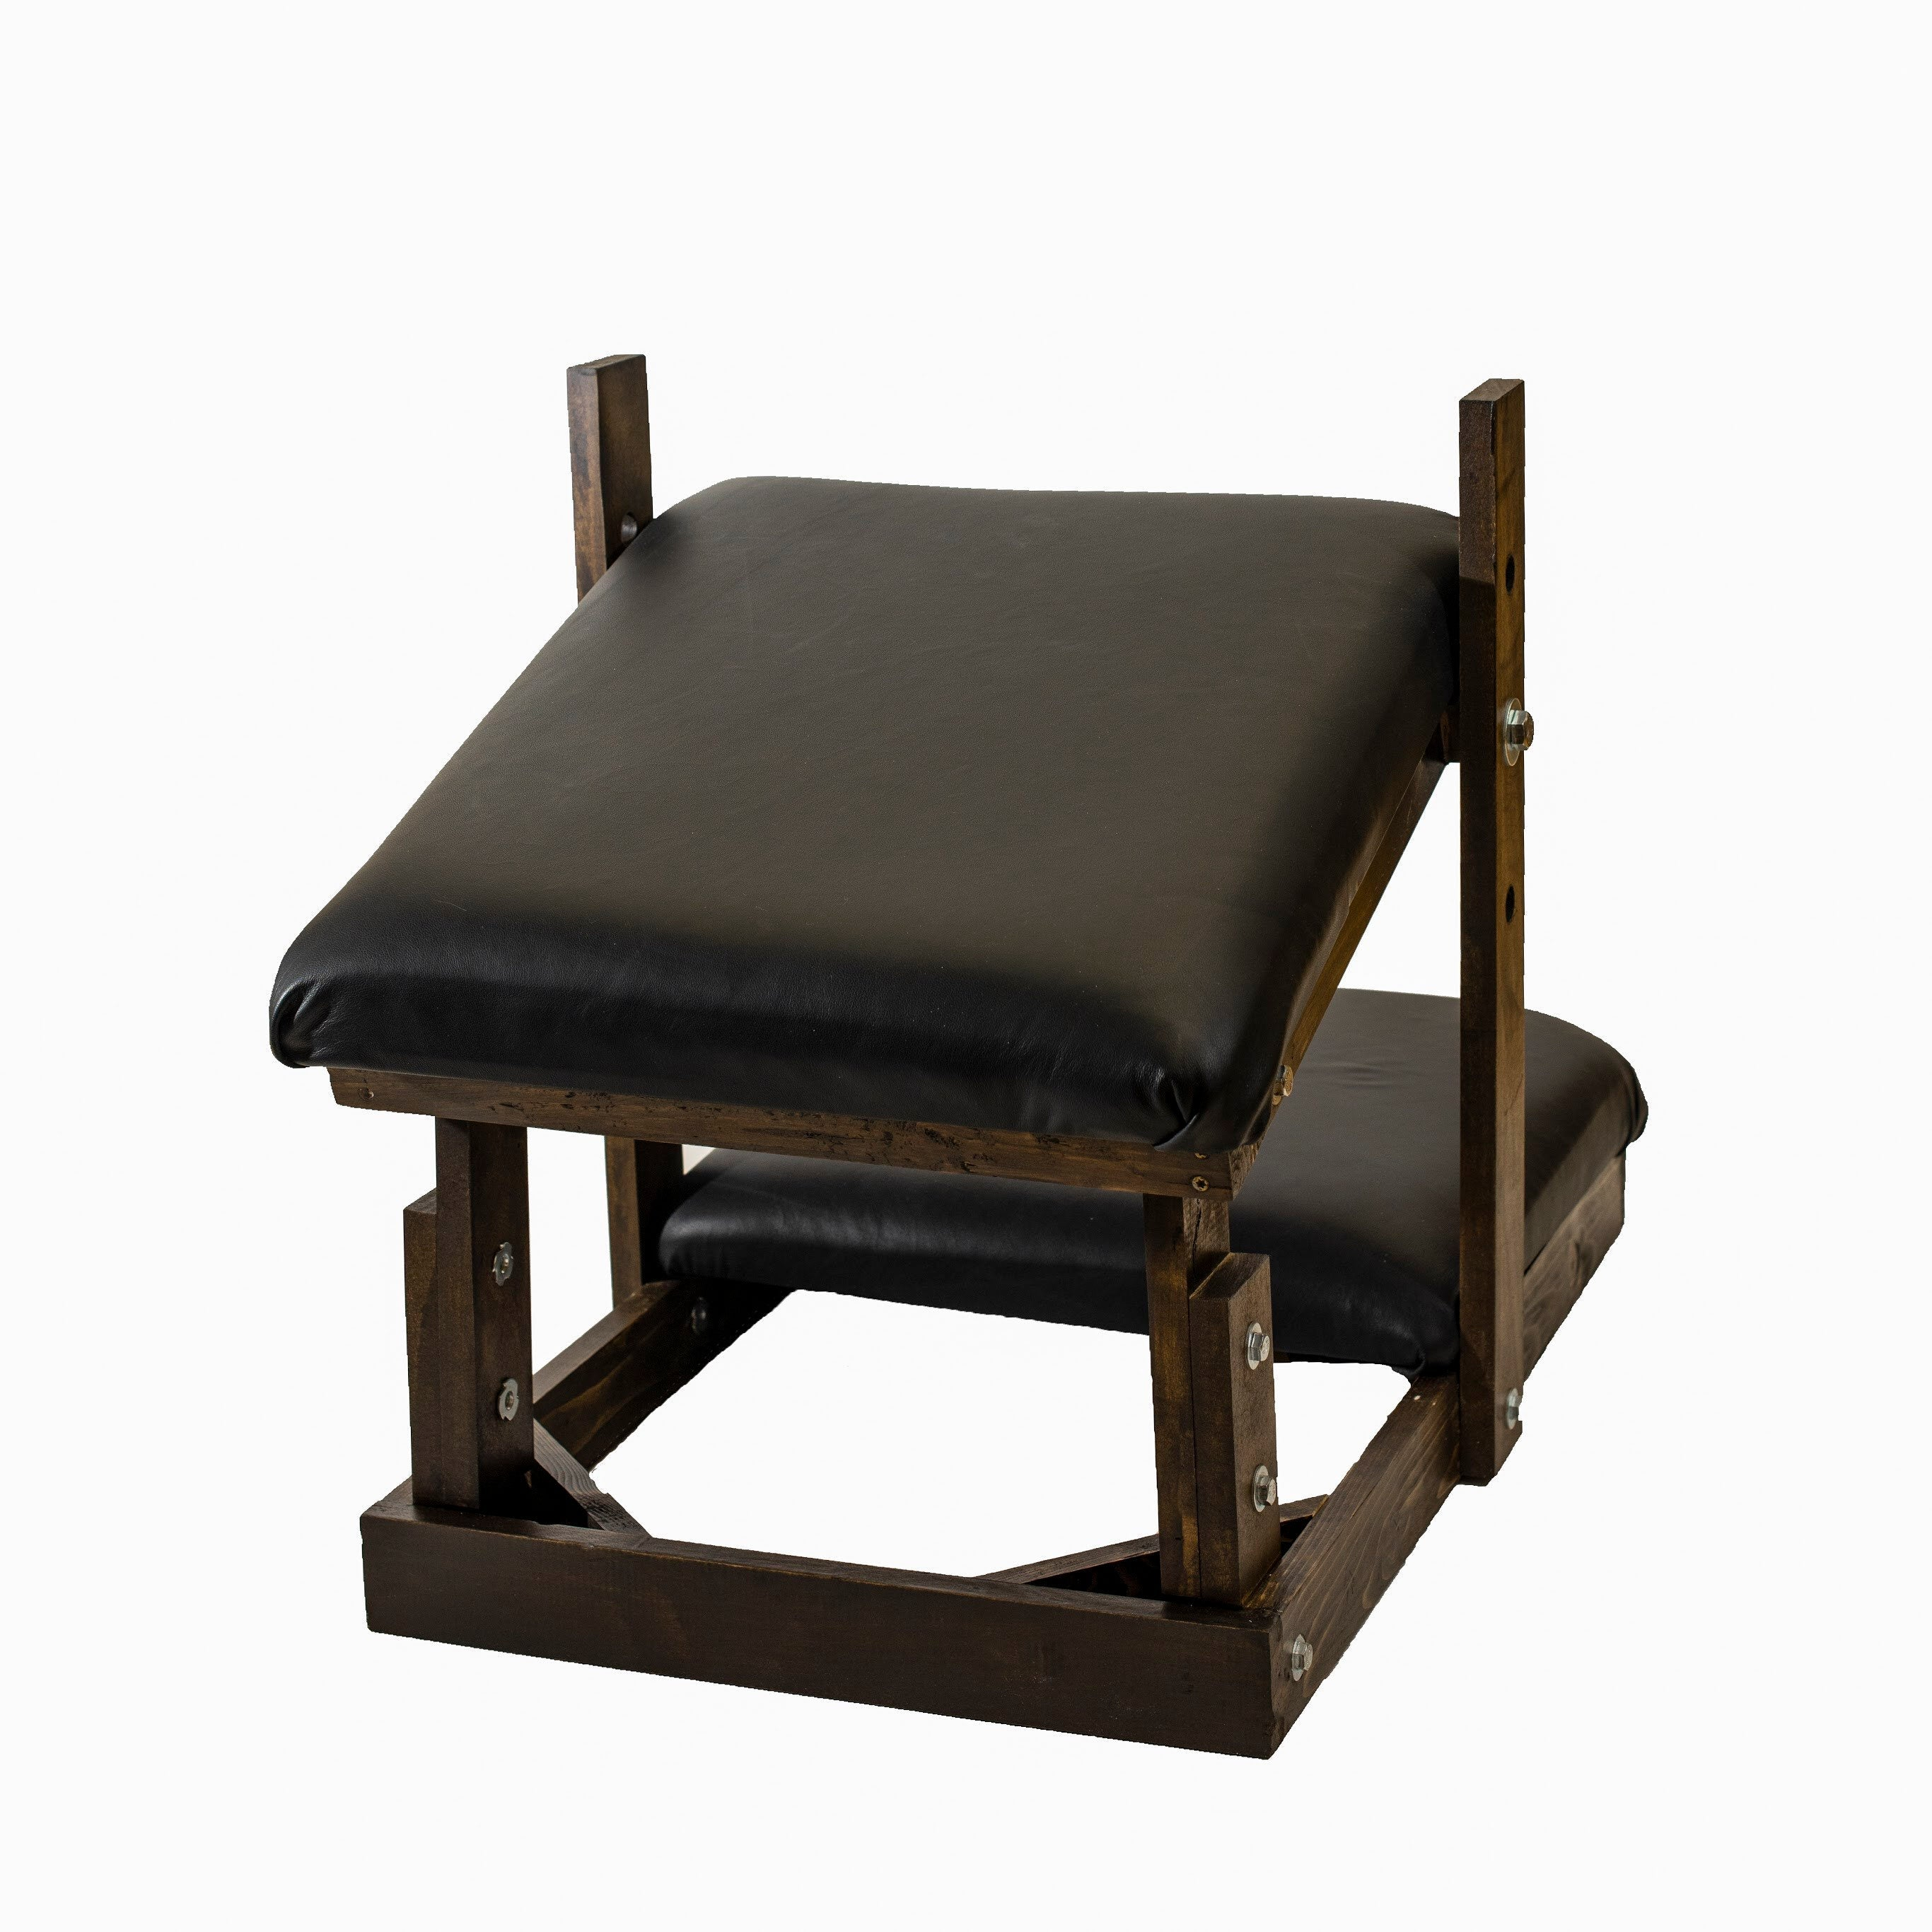 Large Deluxe Kneeler / BDSM Spanking Bench with Tie Downs and Angle Adjustment